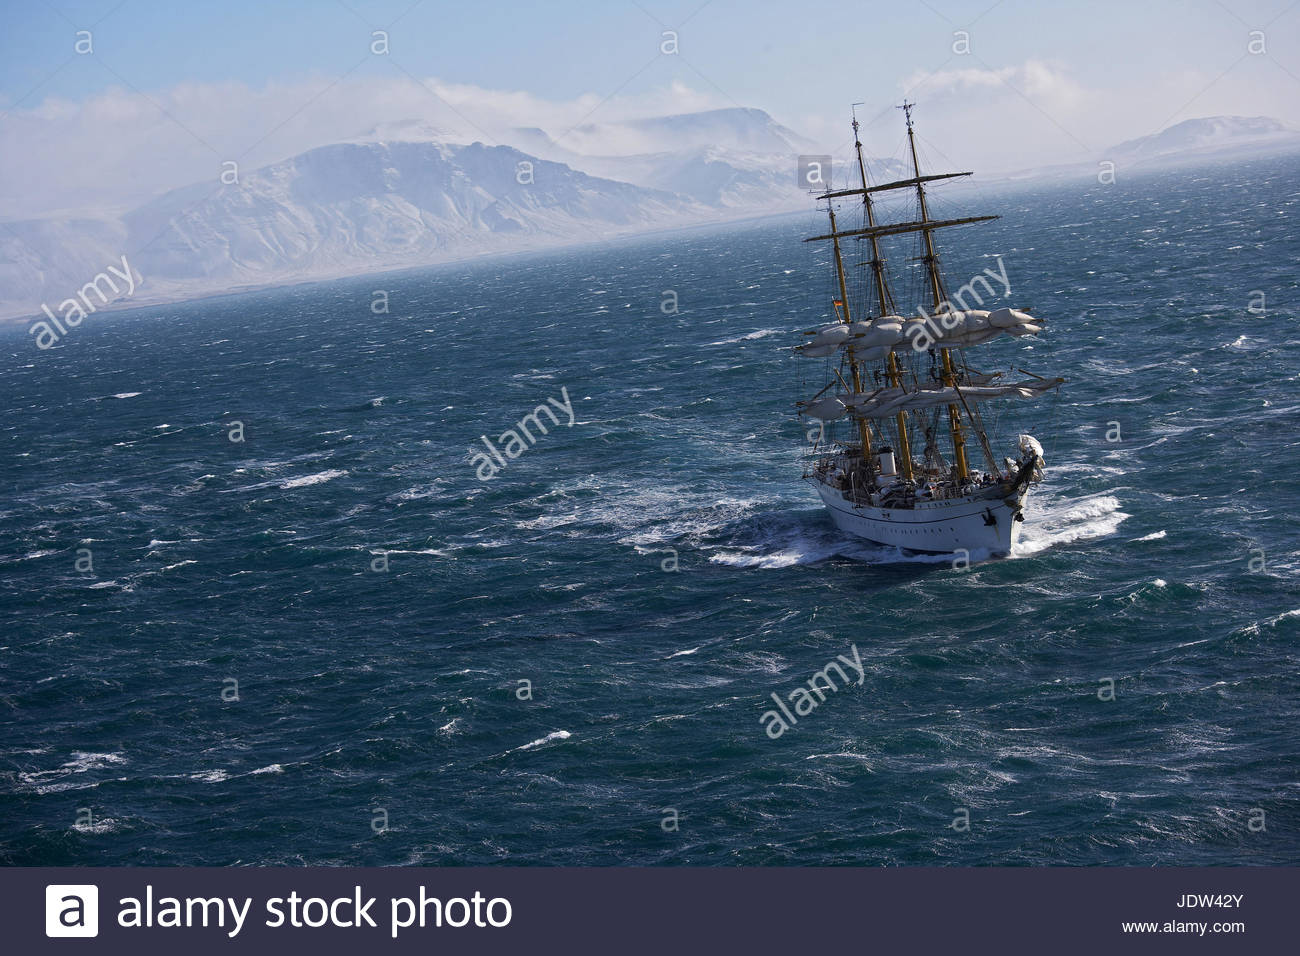 Traditional boat sailing on ocean, German Navy sail boat 'Gorch Fock' in waters close to Reykjavik, Iceland - Stock Image